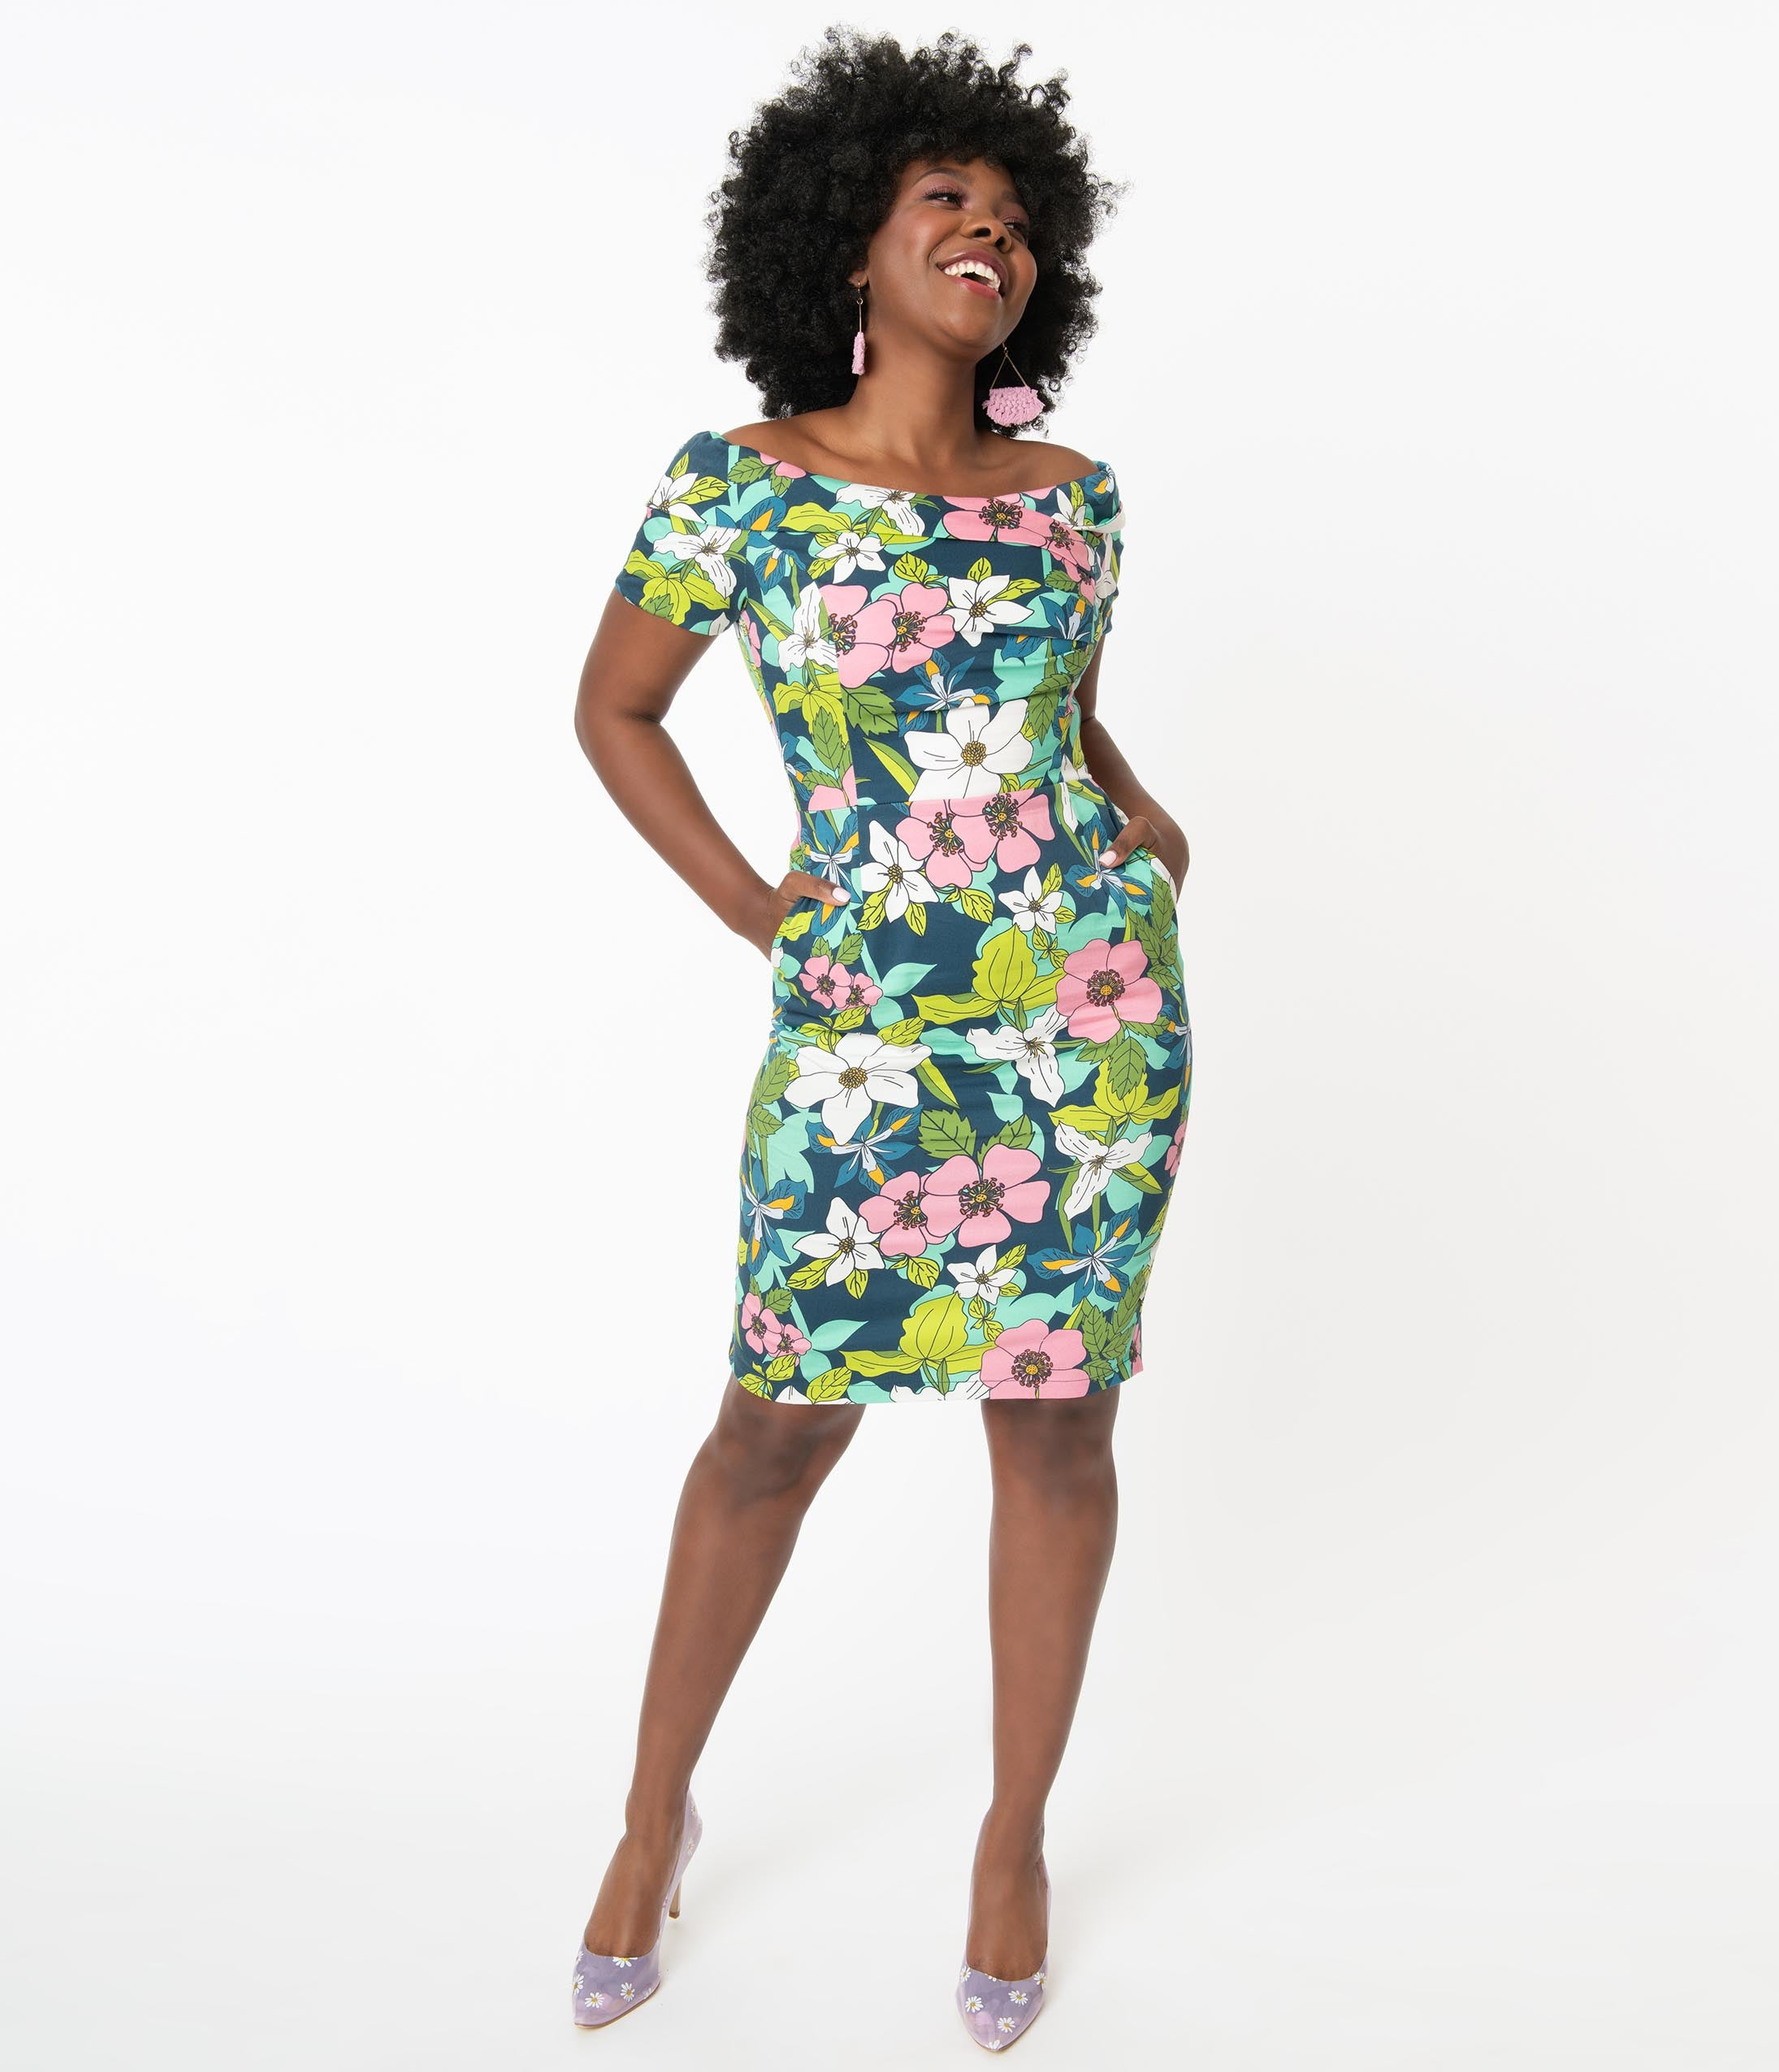 Retro Tiki Dress – Tropical, Hawaiian Dresses Retro Blue  Pink Provincial Flowers Tyra Pencil Dress $100.00 AT vintagedancer.com